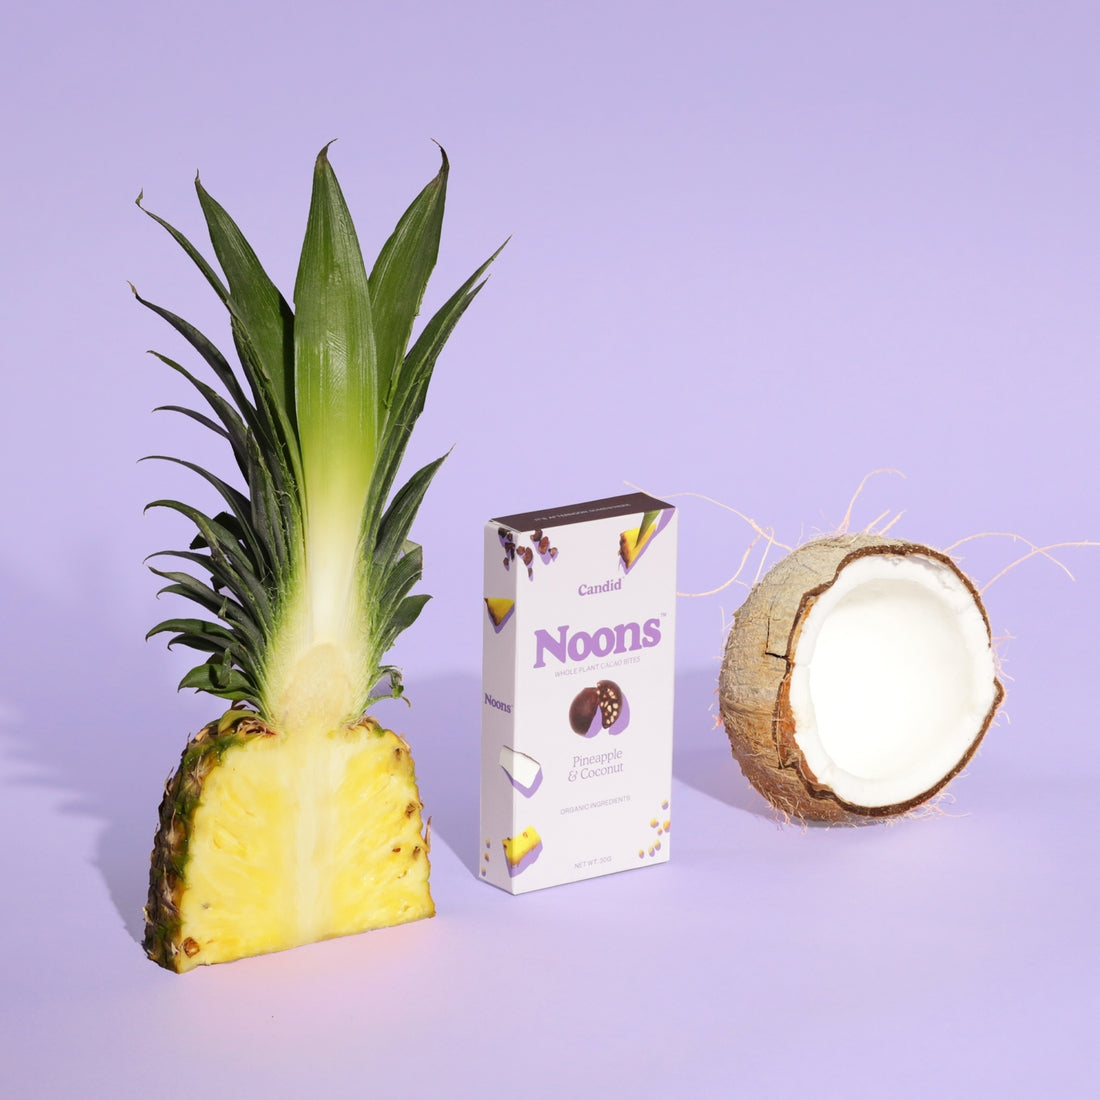 Noons - Pineapple & Coconut